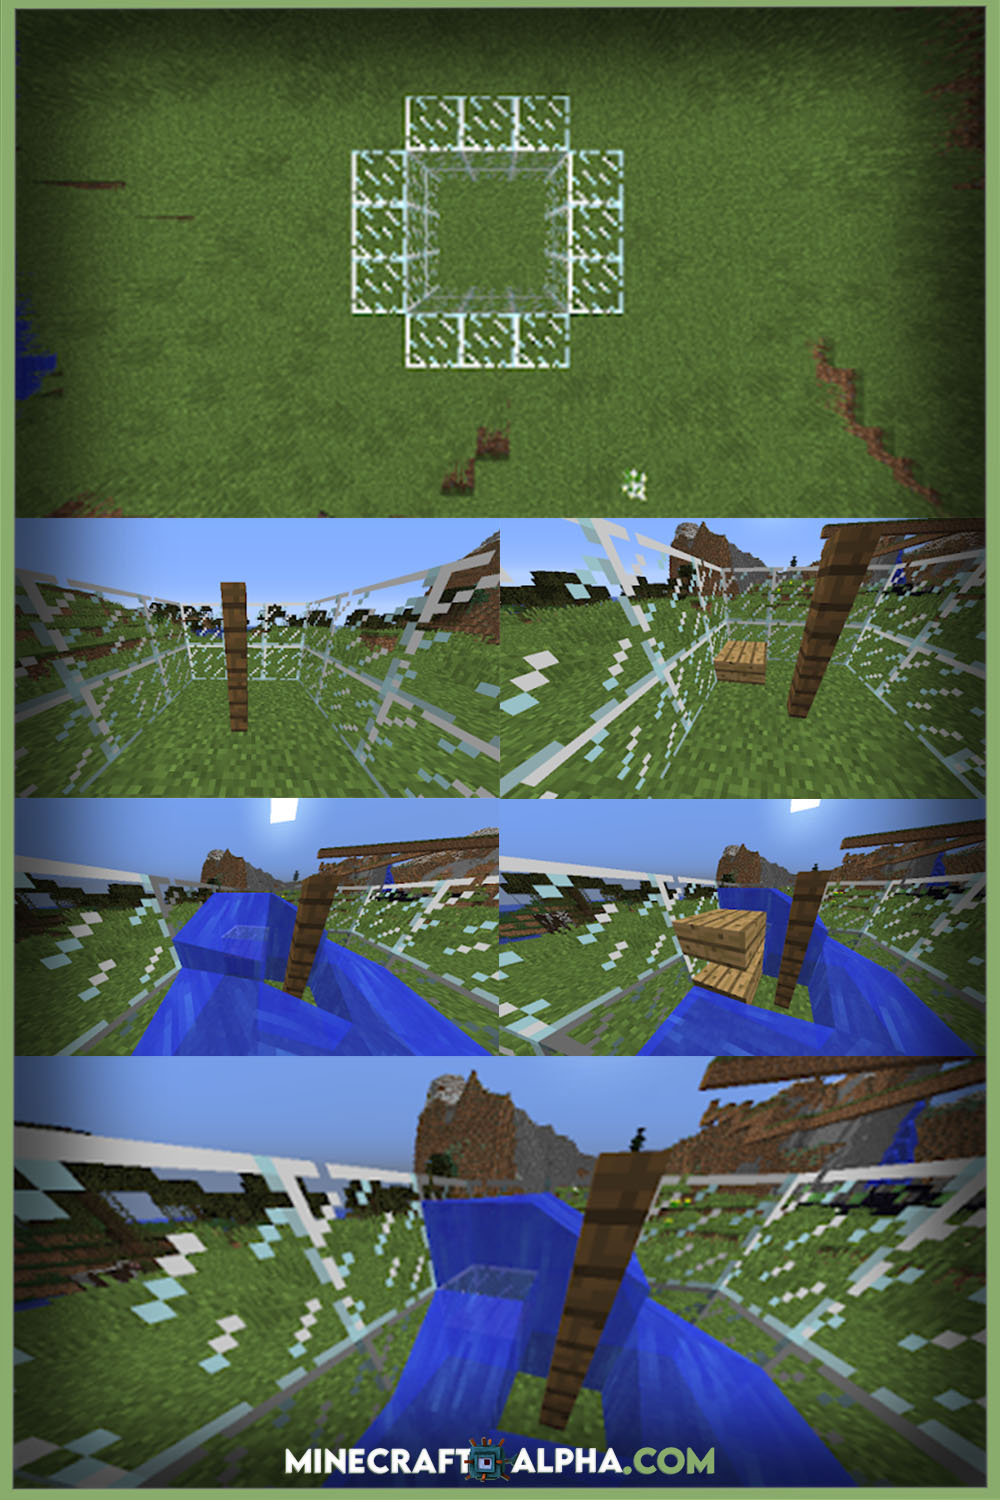 How to Make an AFK Pool